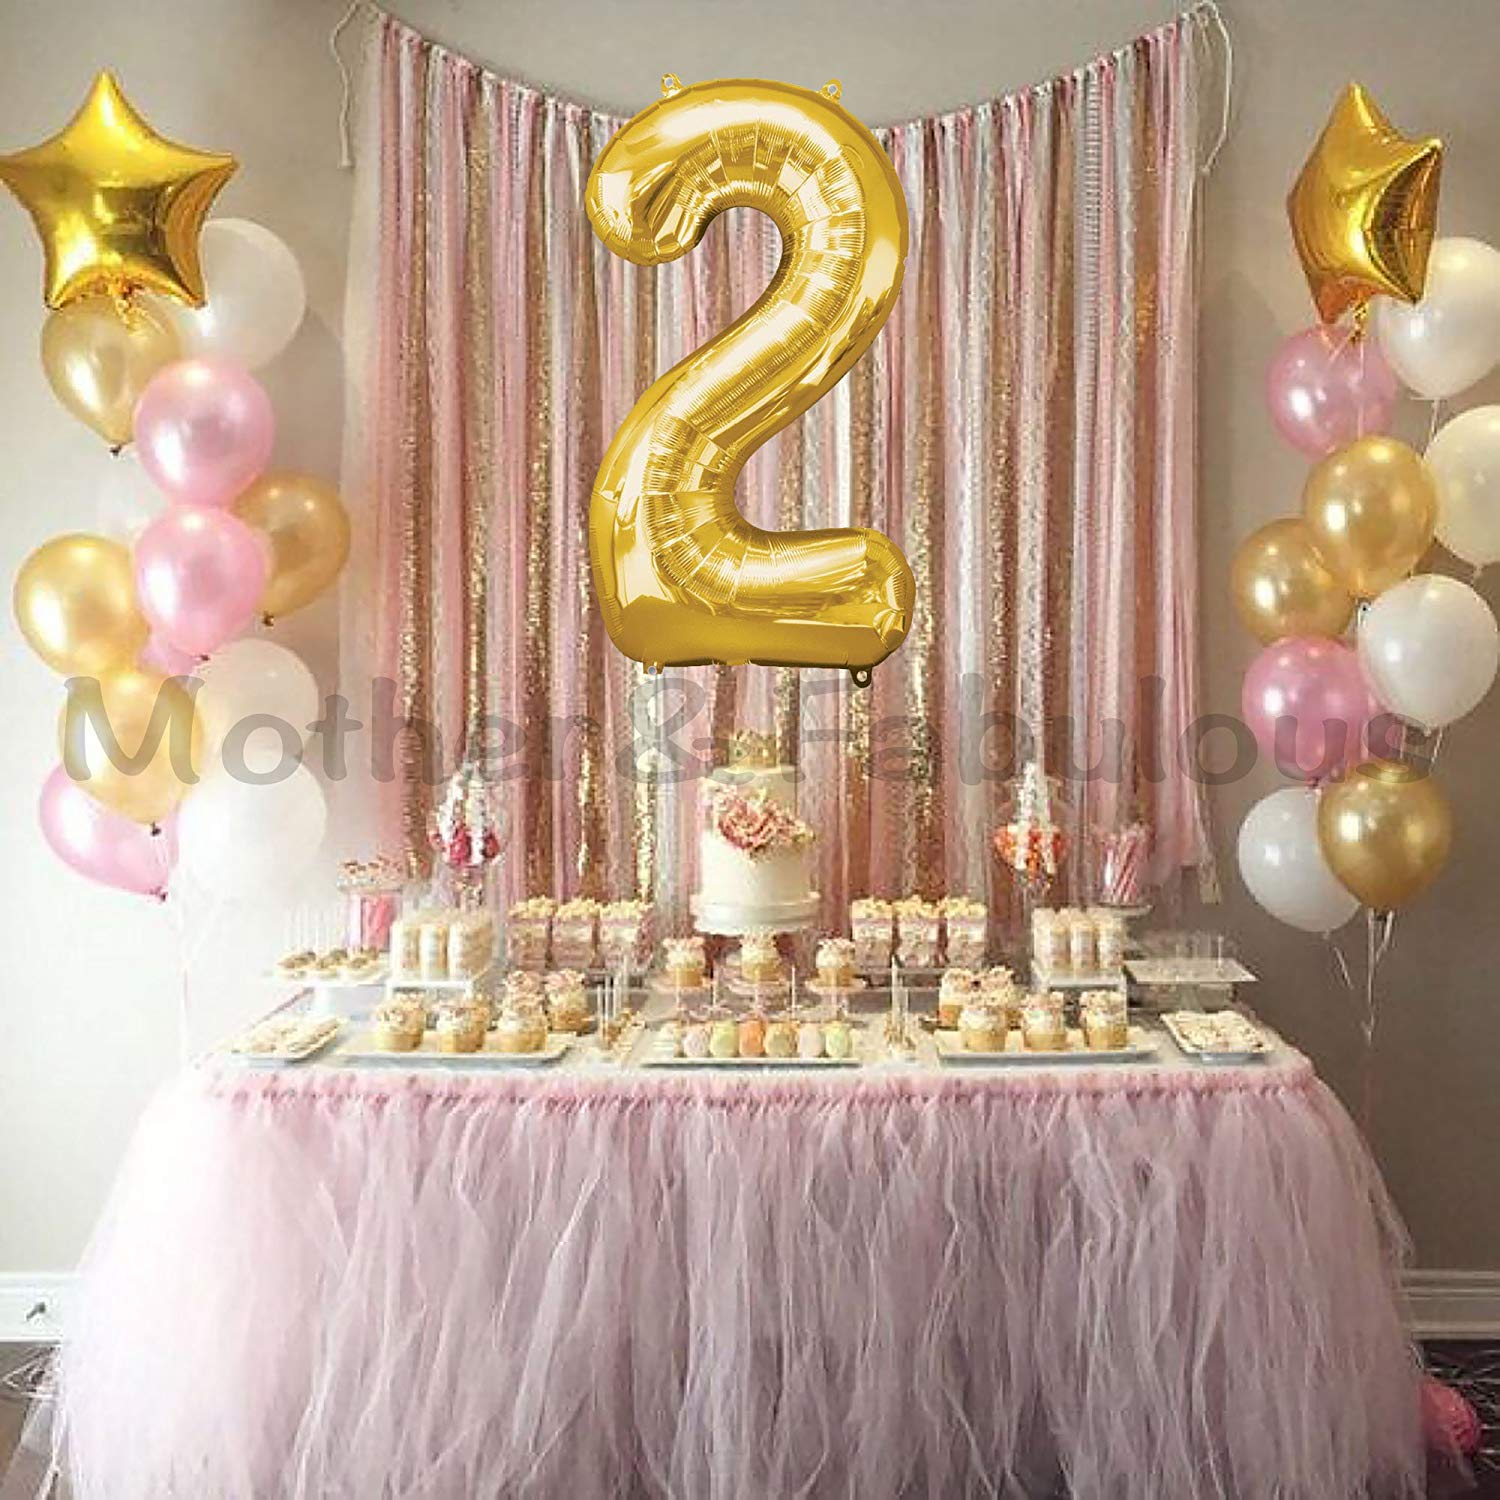 Get Quotations Second Birthday Baby Girl Balloons Decoration 40 Number2 Mylar Balloon